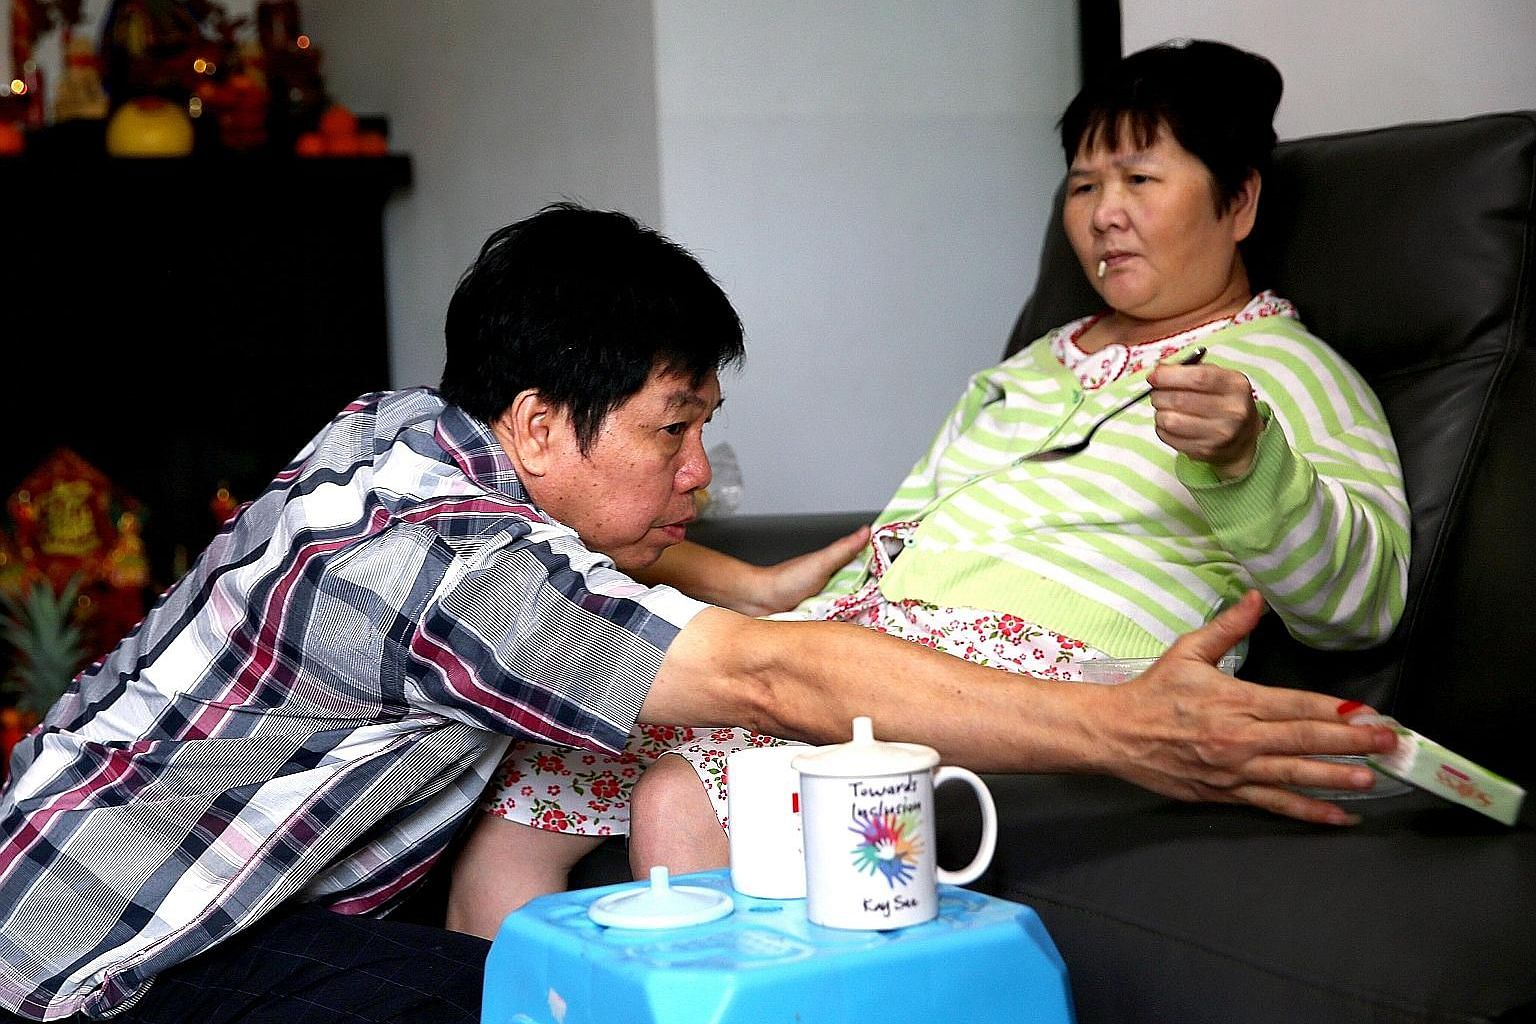 Madam Ang Liu Kiow, seen here with her husband Leong Loon Wah, was hit by an e-scooter and suffered severe head injuries.